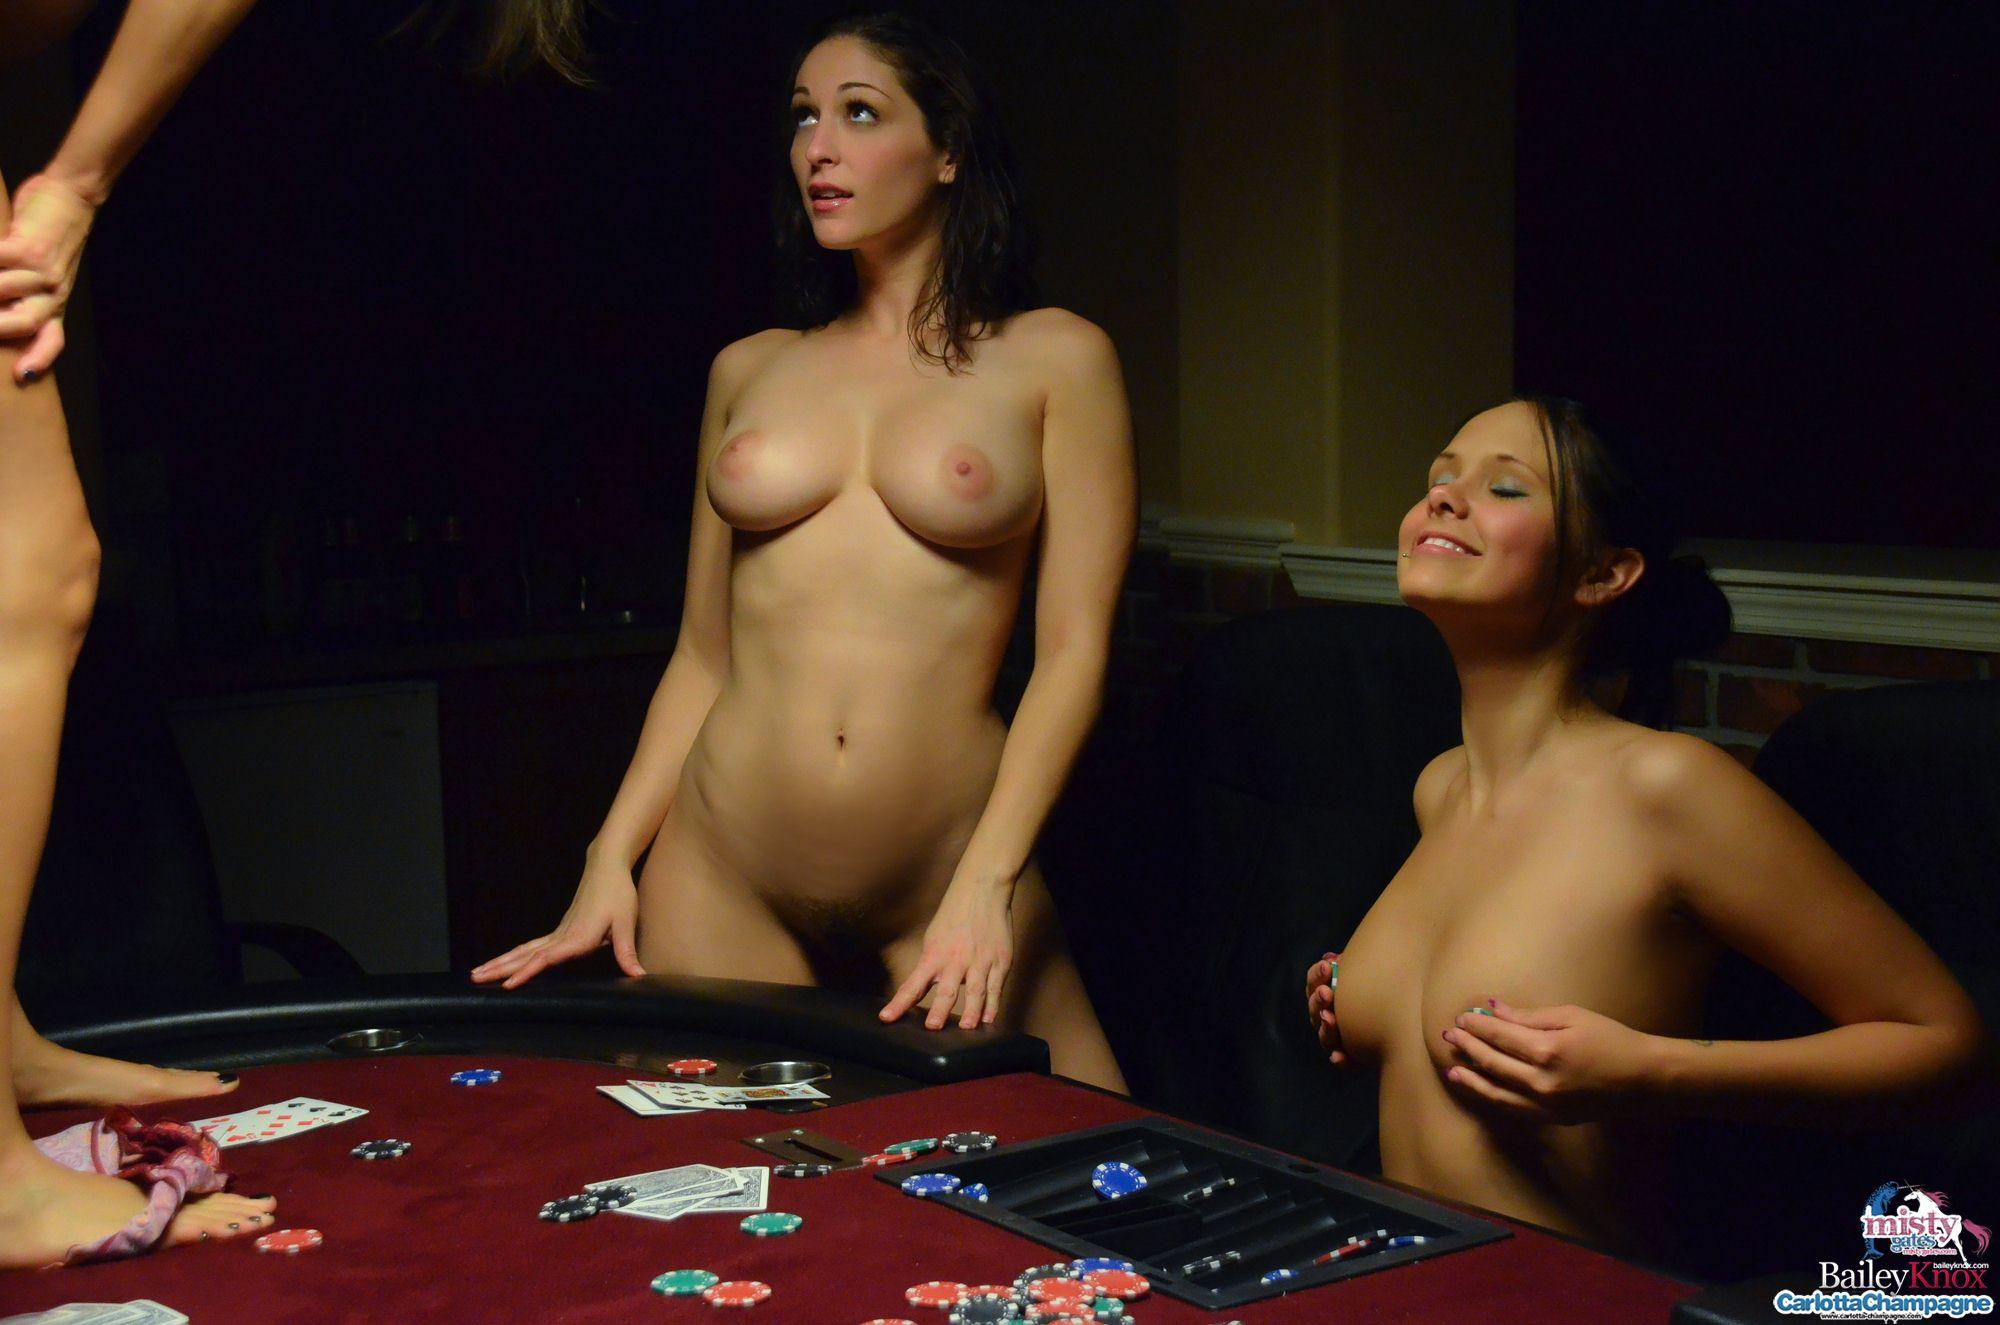 Swimsuit Nude Picture Playing Poker Pics